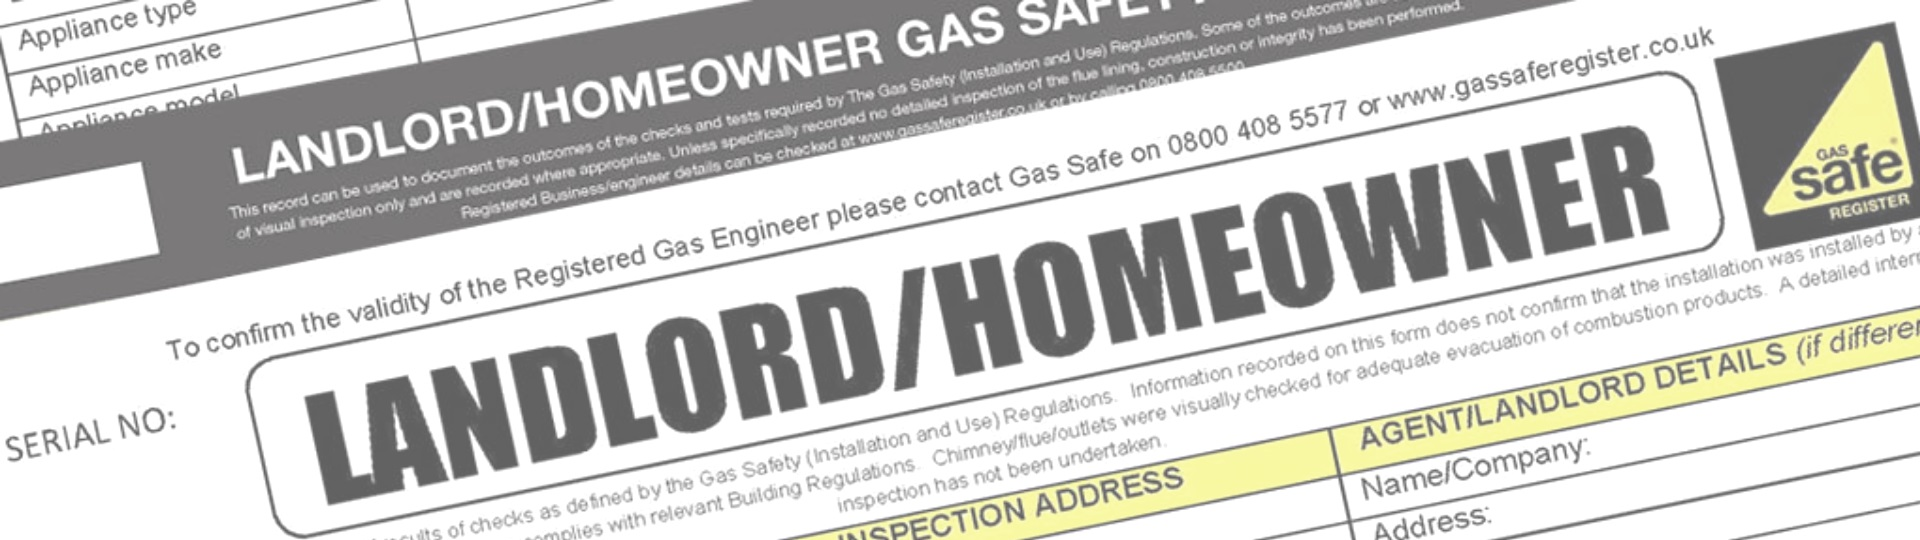 Gas Saftey Certificates Chipping Sodbury